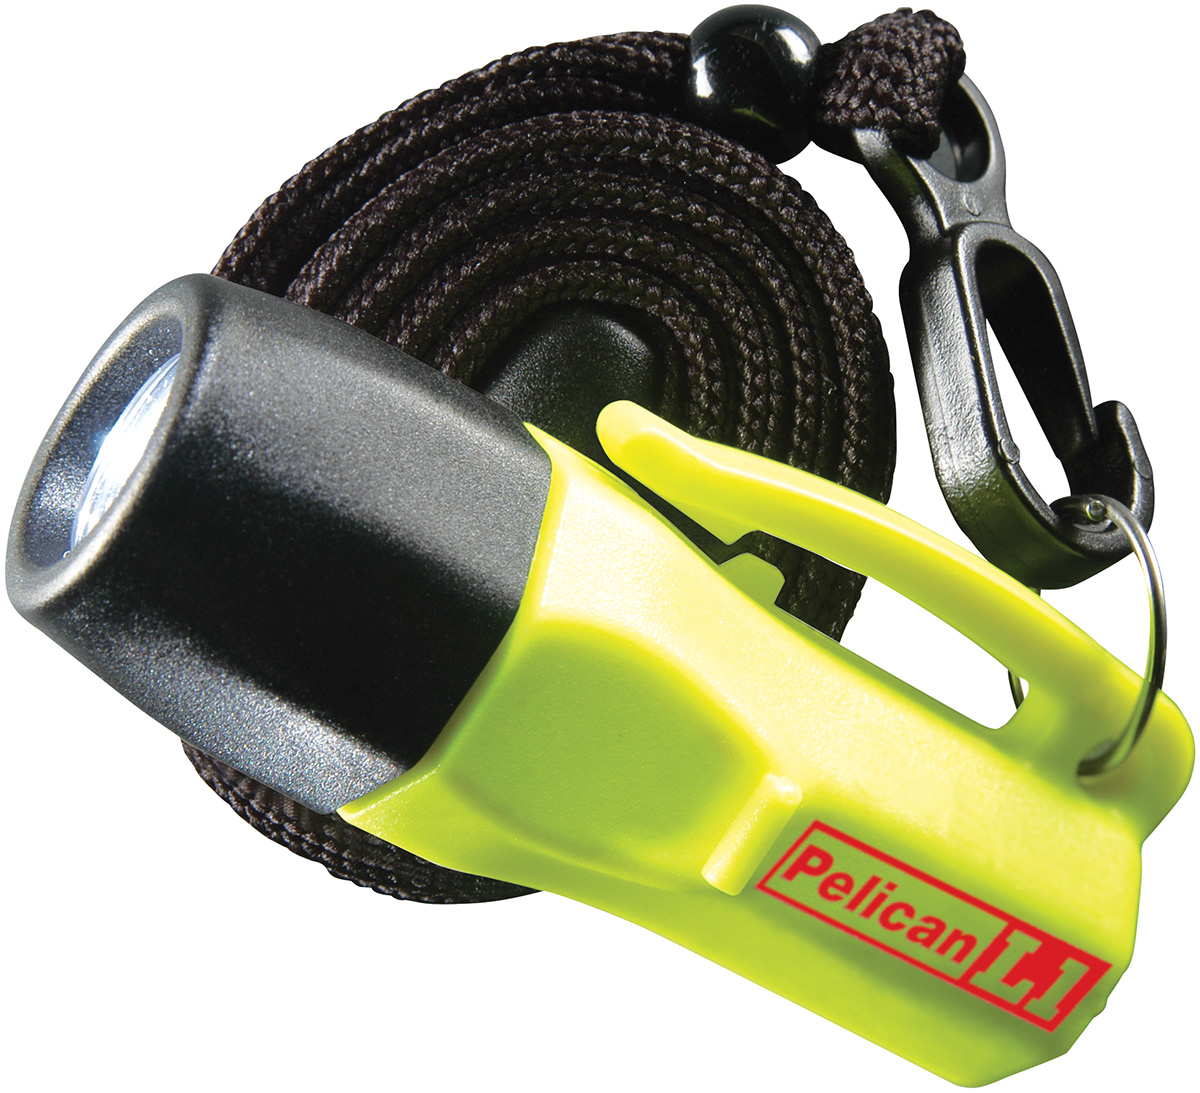 pelican peli products 1930 emergency preparedness flashlight